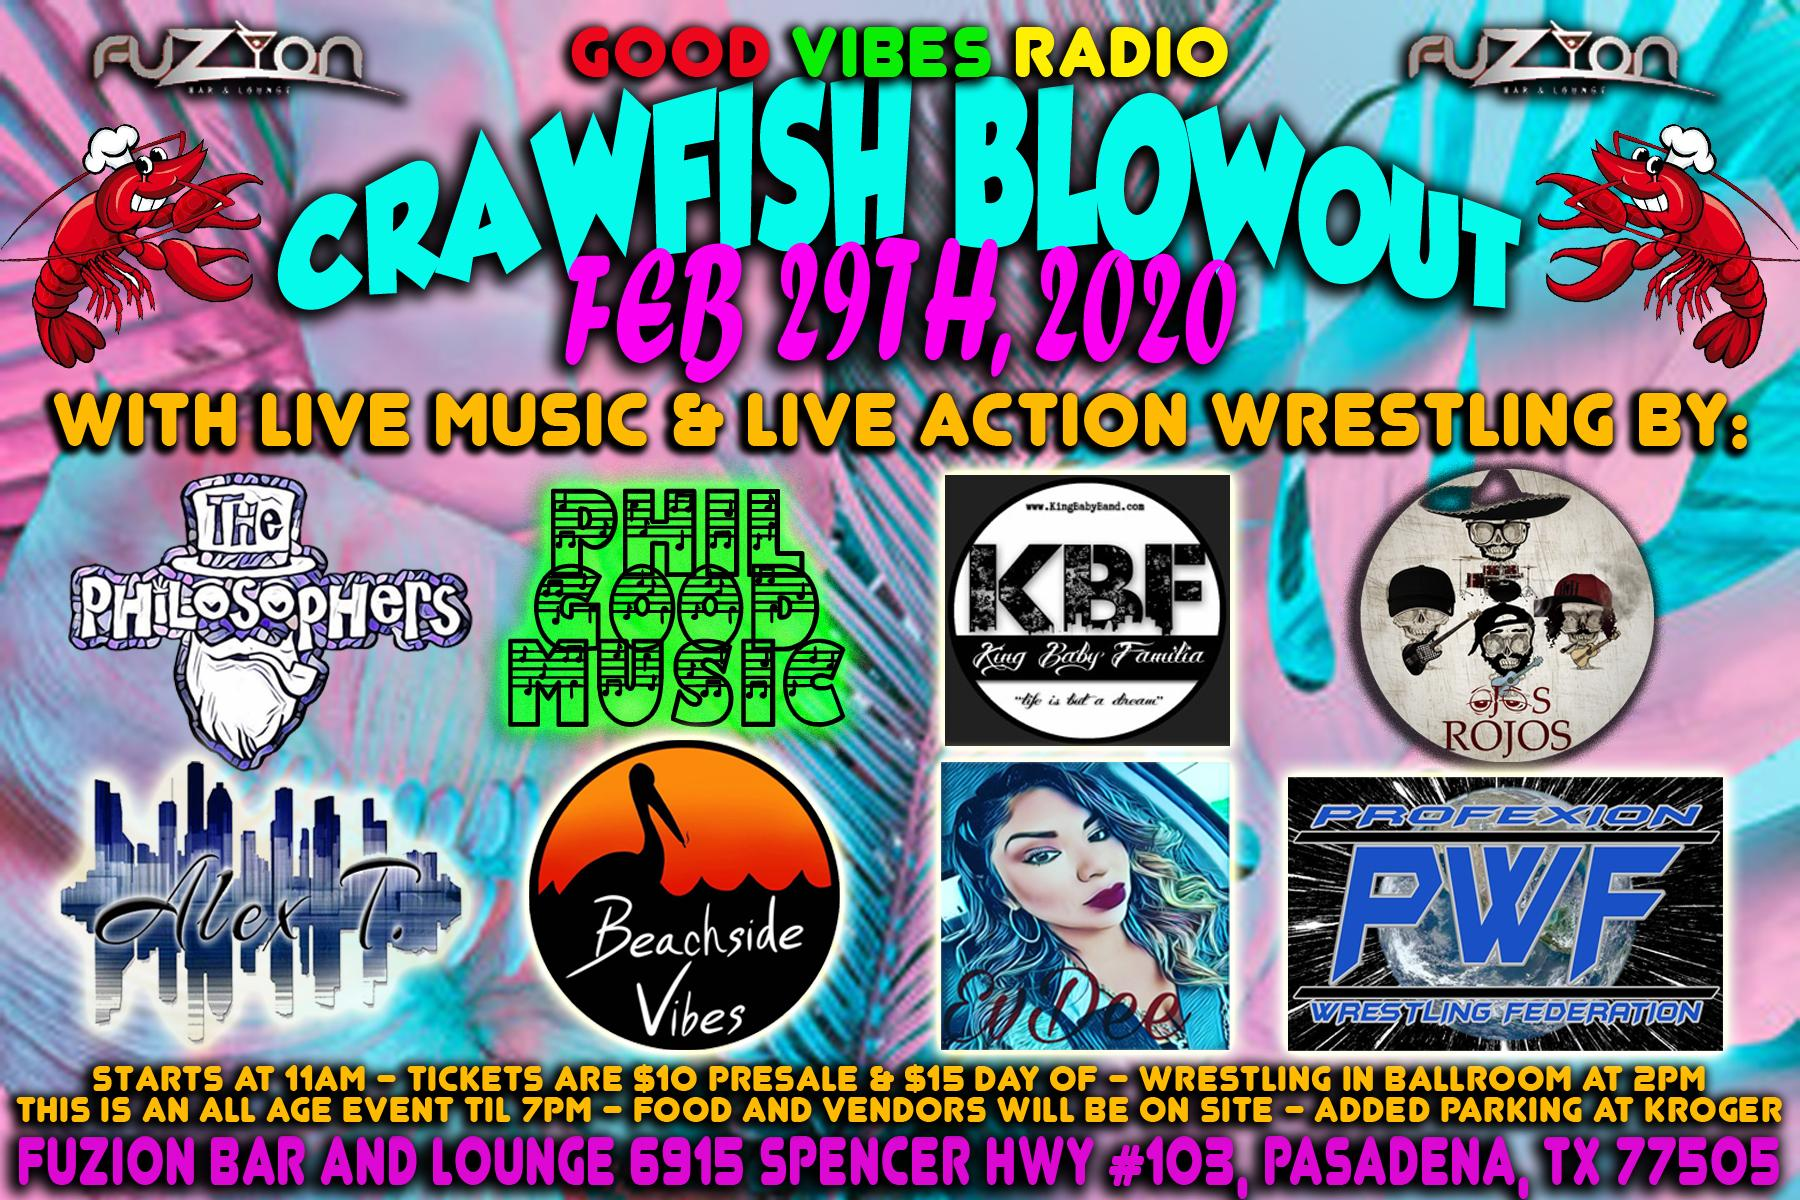 Good Vibes Radio Crawfish Blowout